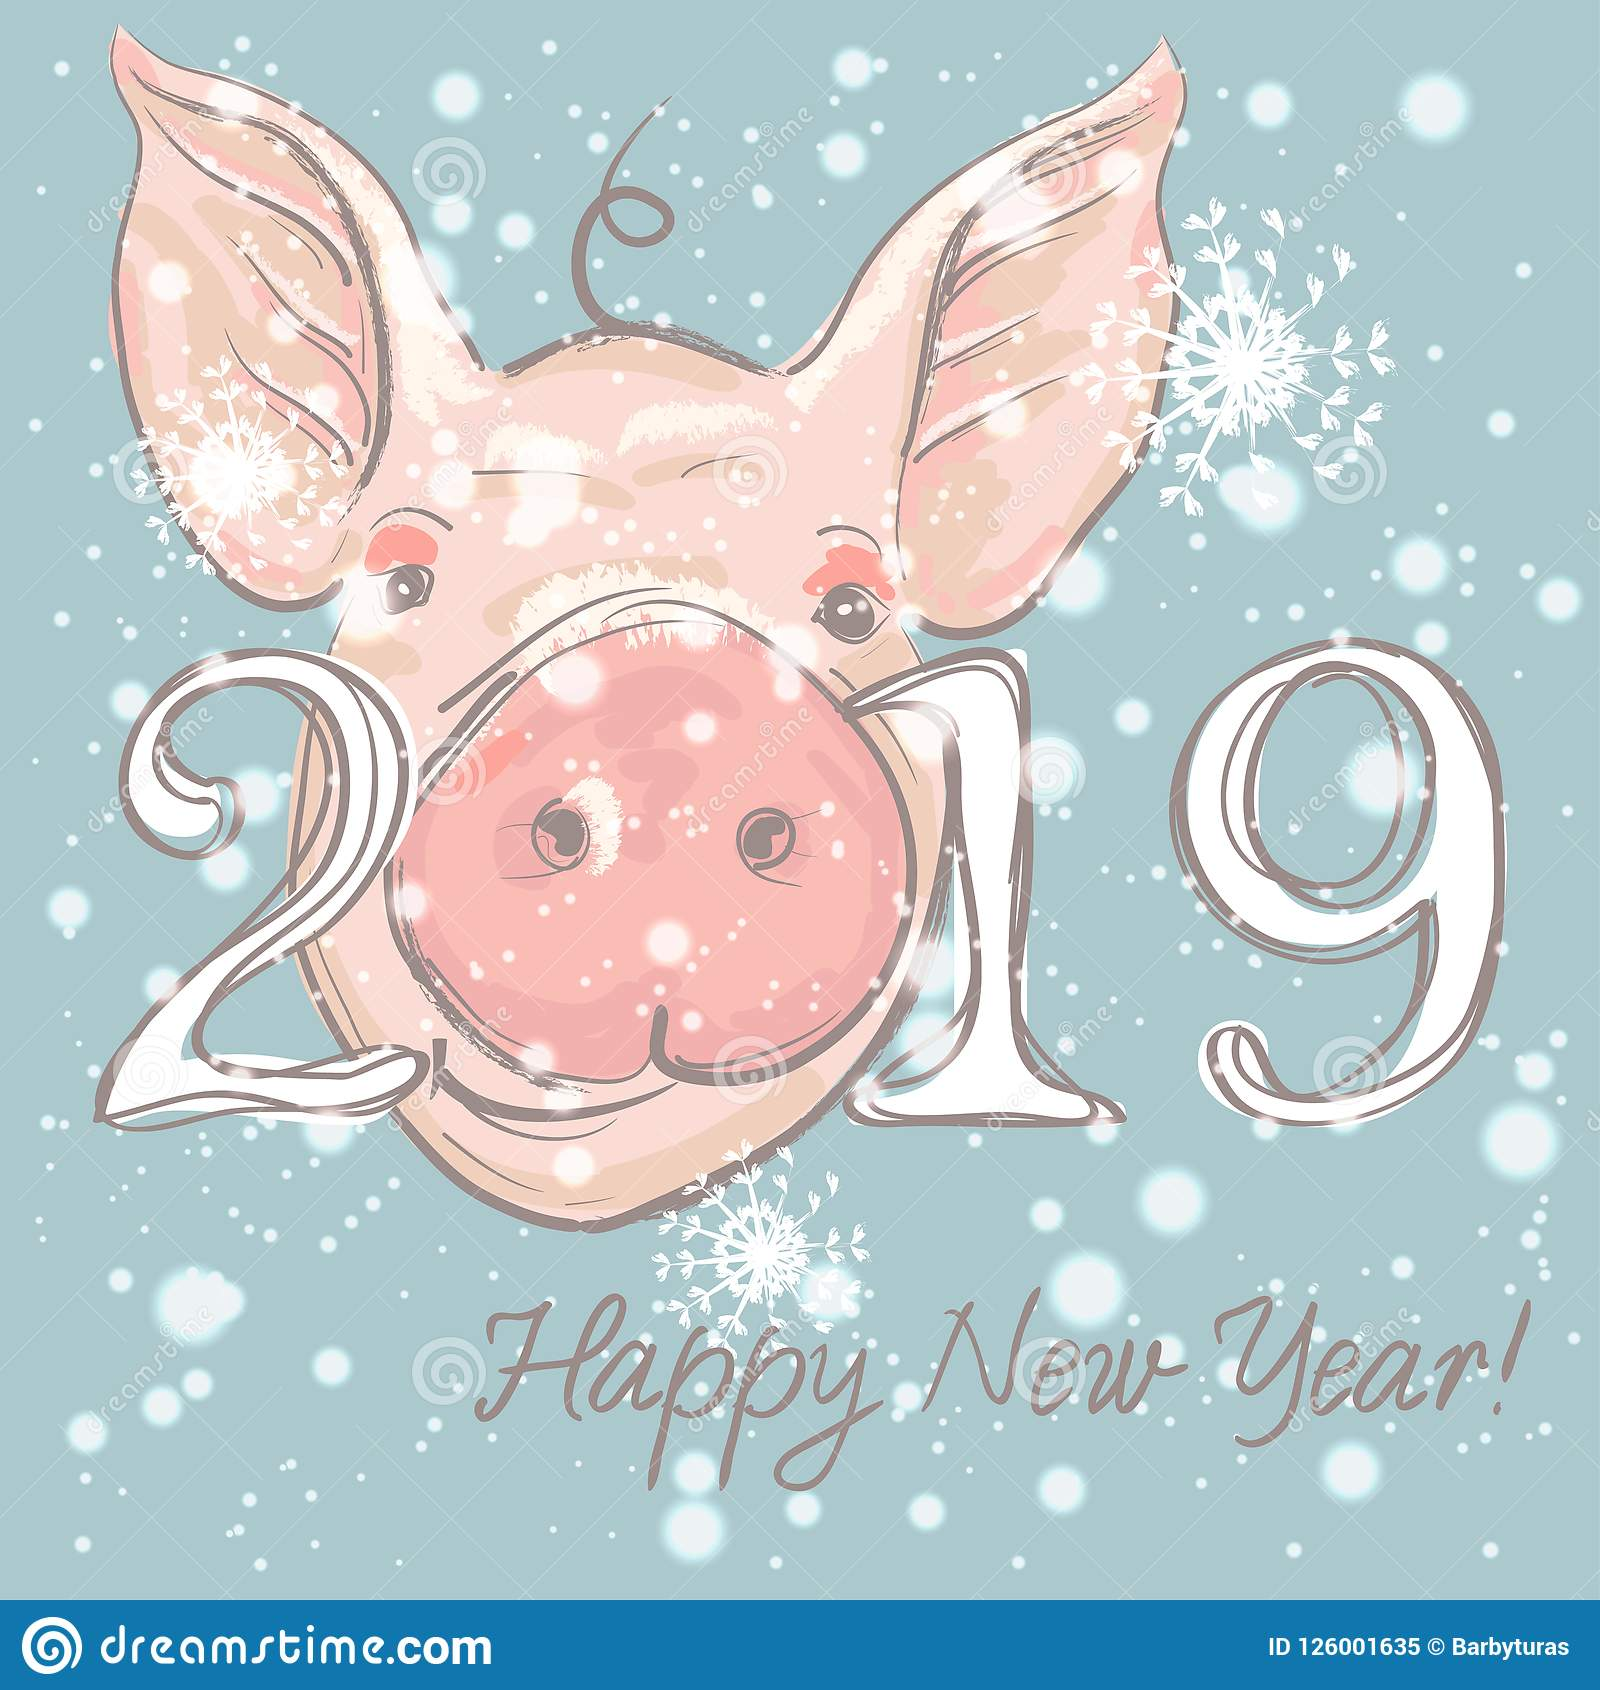 happy new year 2019 funny card design with cartoon pigs face vector illustration